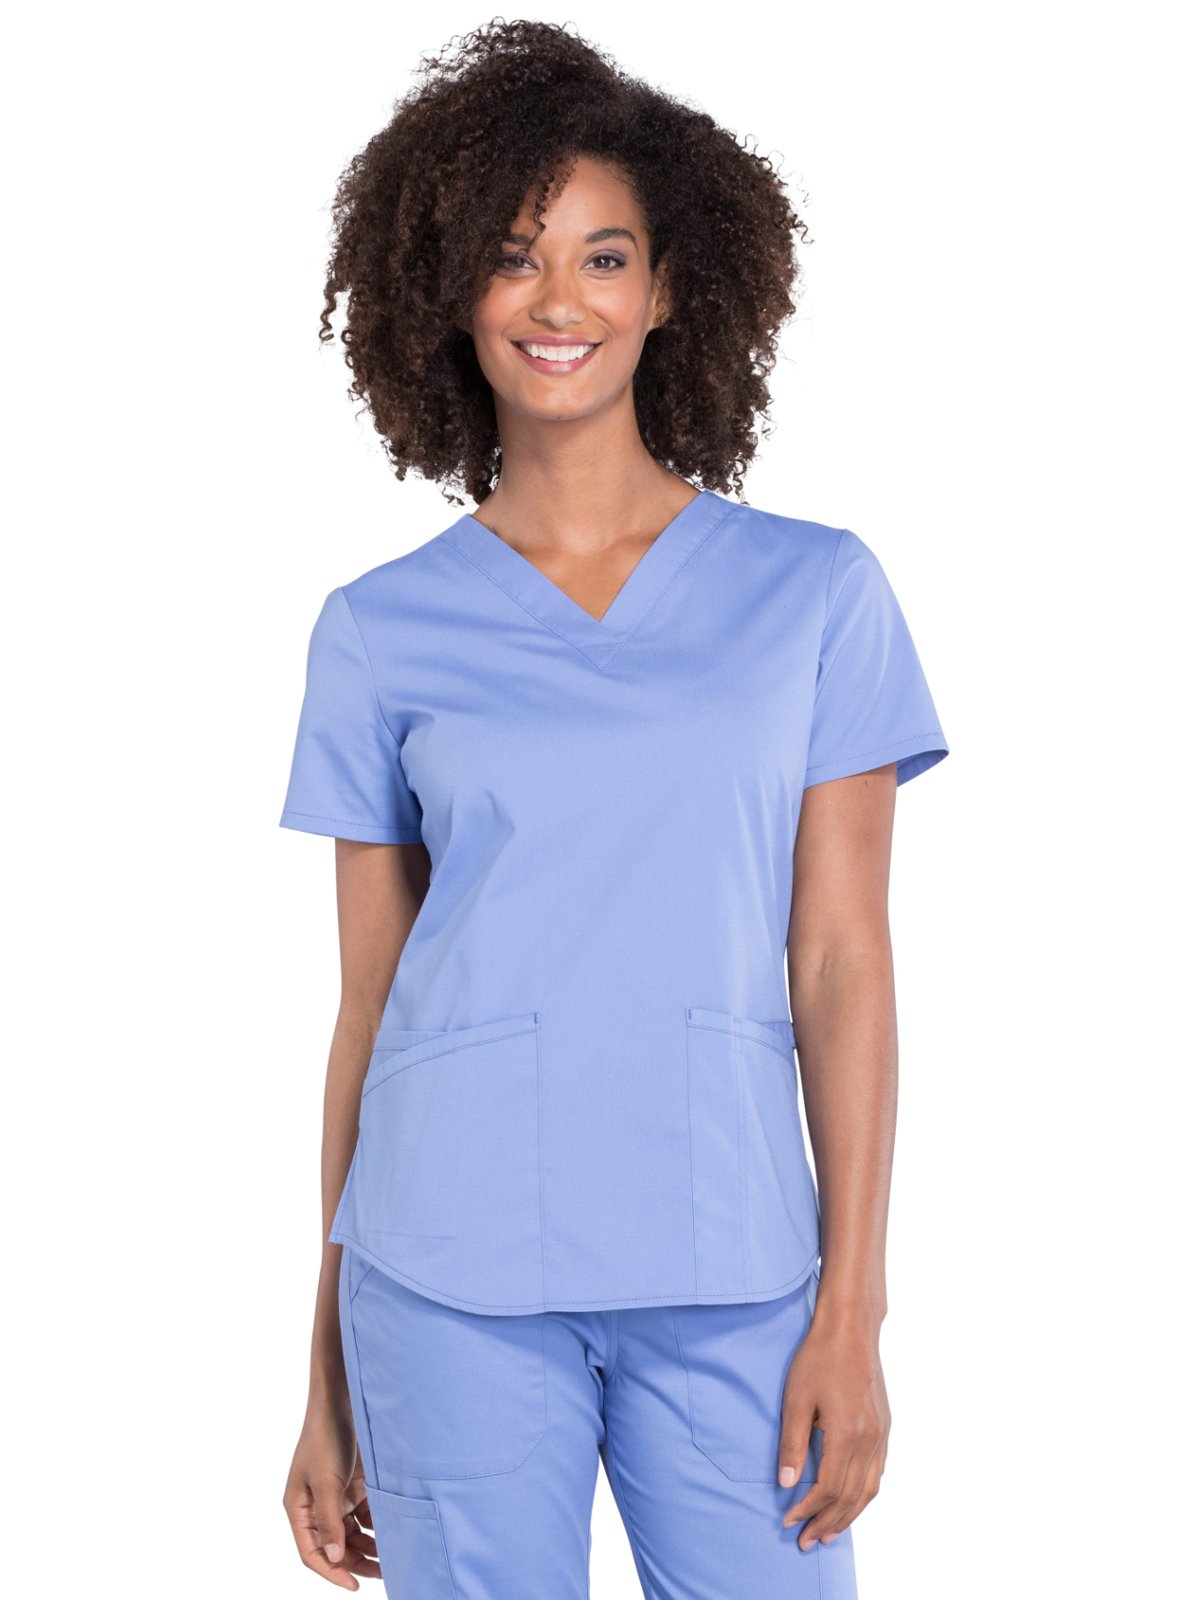 Cherokee Workwear Professionals WW665 V-Neck Top- Ciel Blue- Small